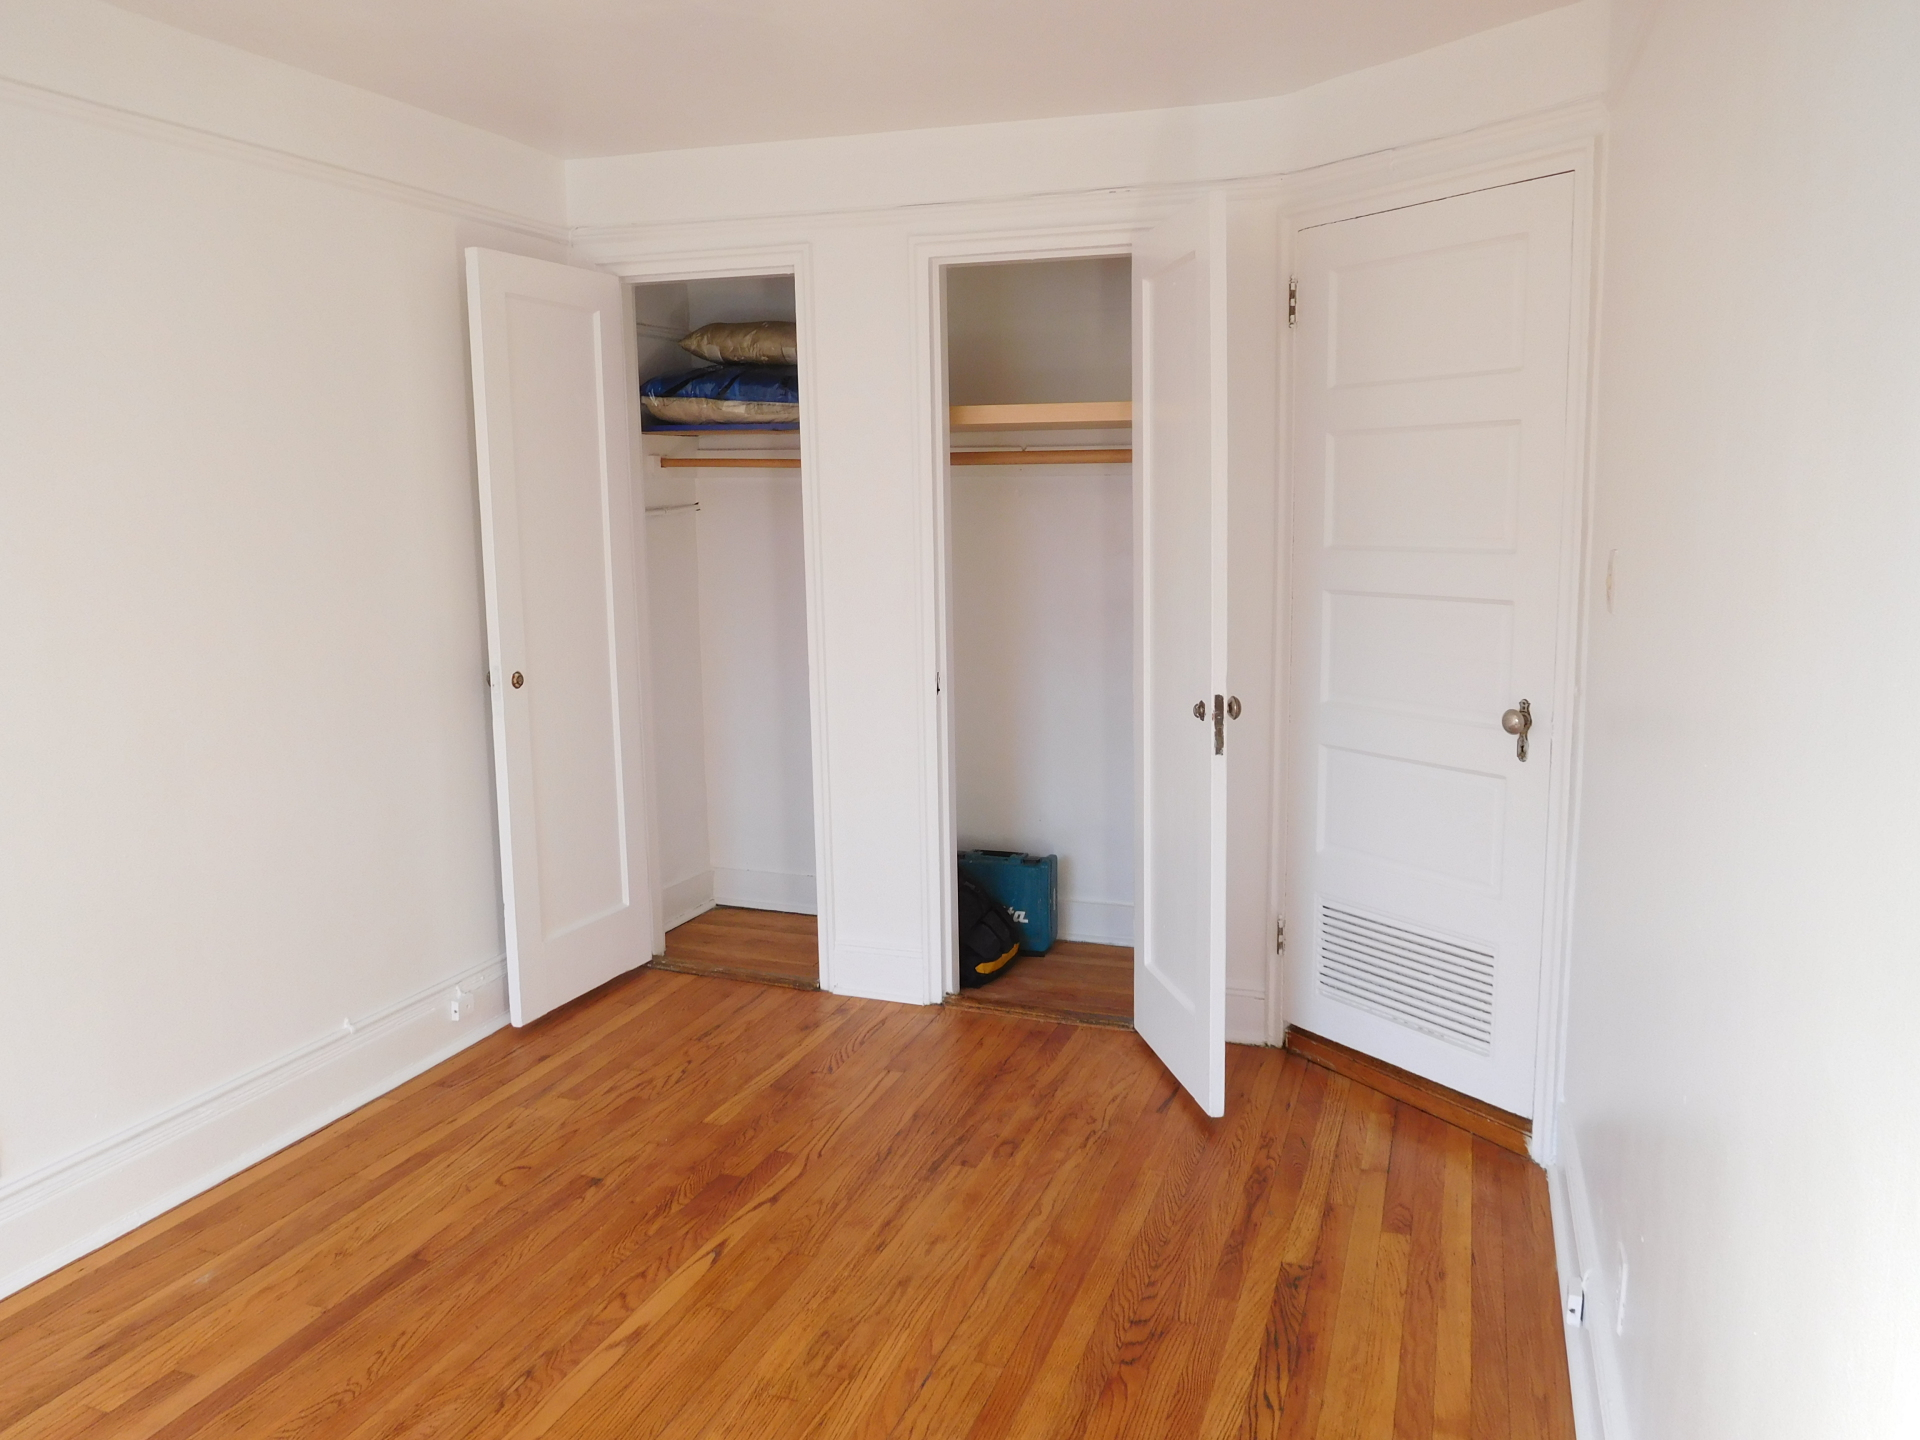 Bedroom with Separate Closets